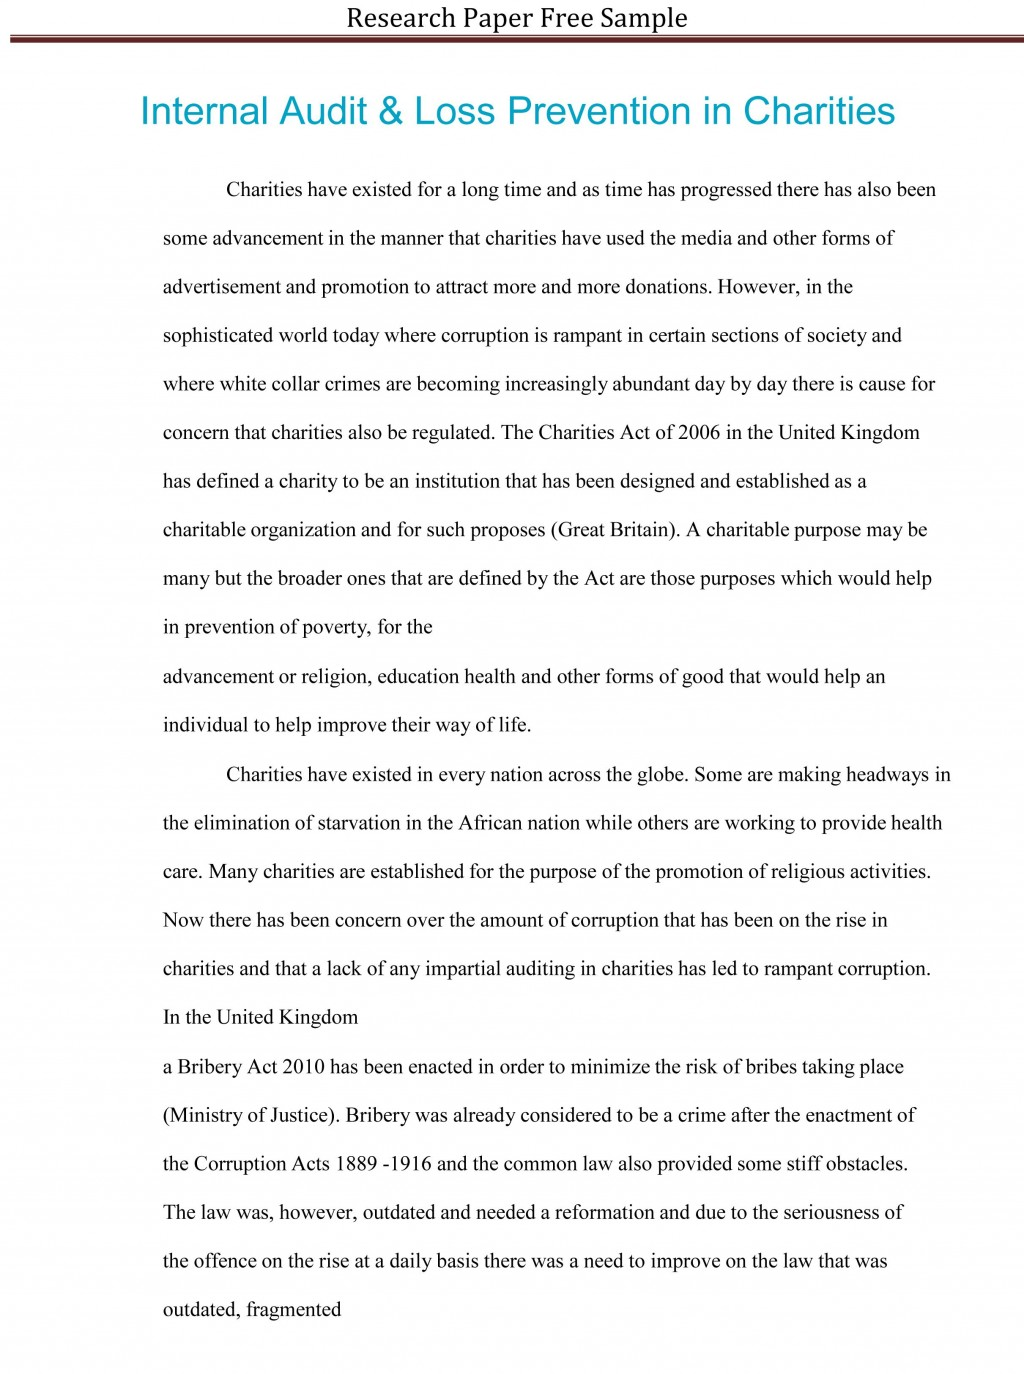 010 Aids Research Paper Essays Unbelievable Large